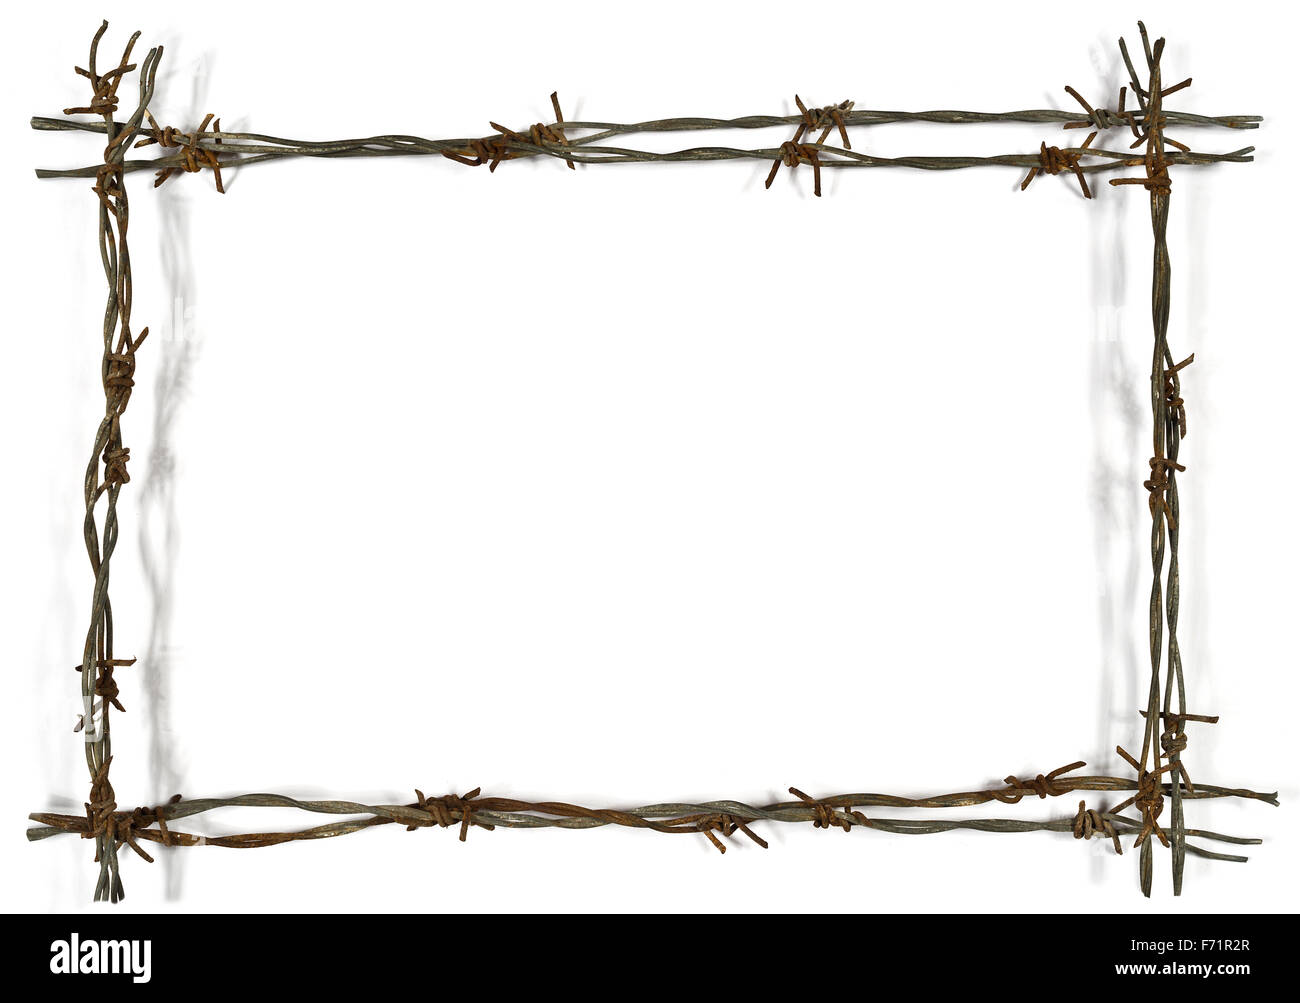 Made Of Barbed Wire Stock Photos & Made Of Barbed Wire Stock Images ...